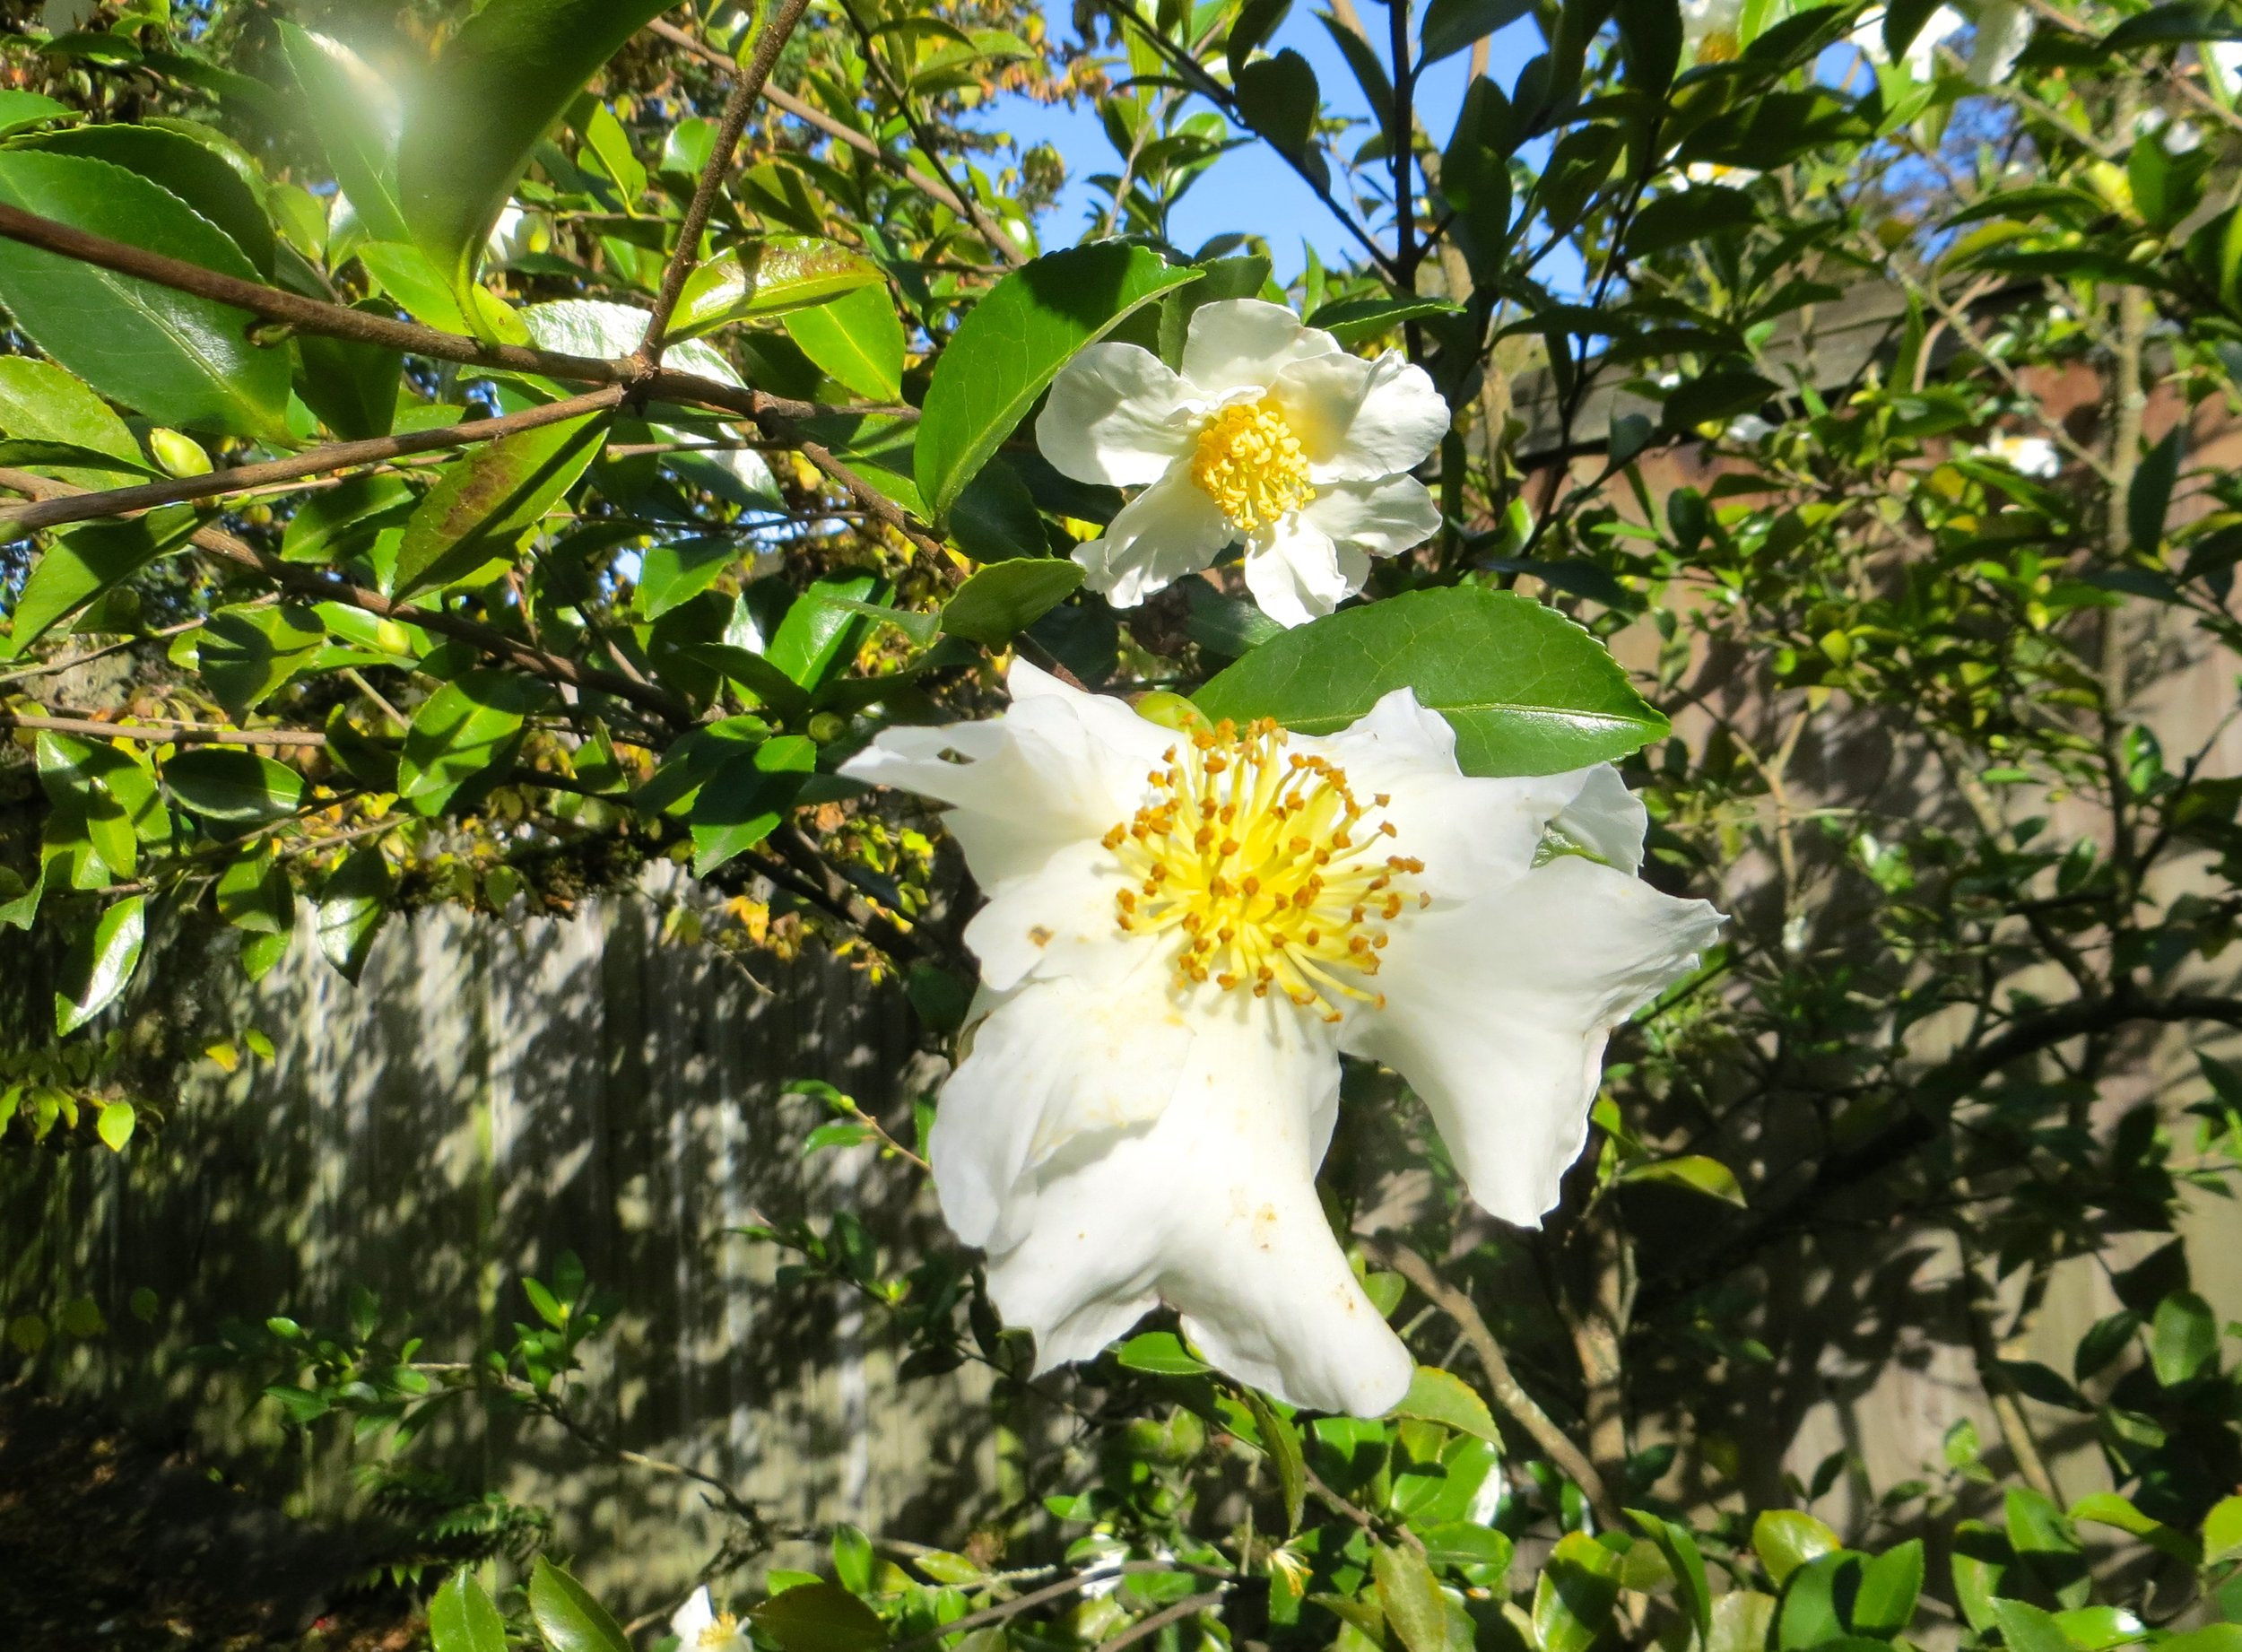 The blooms of sasanqua Camellias are an unexpected delight in the late-fall.Photo: Aleks Monk.